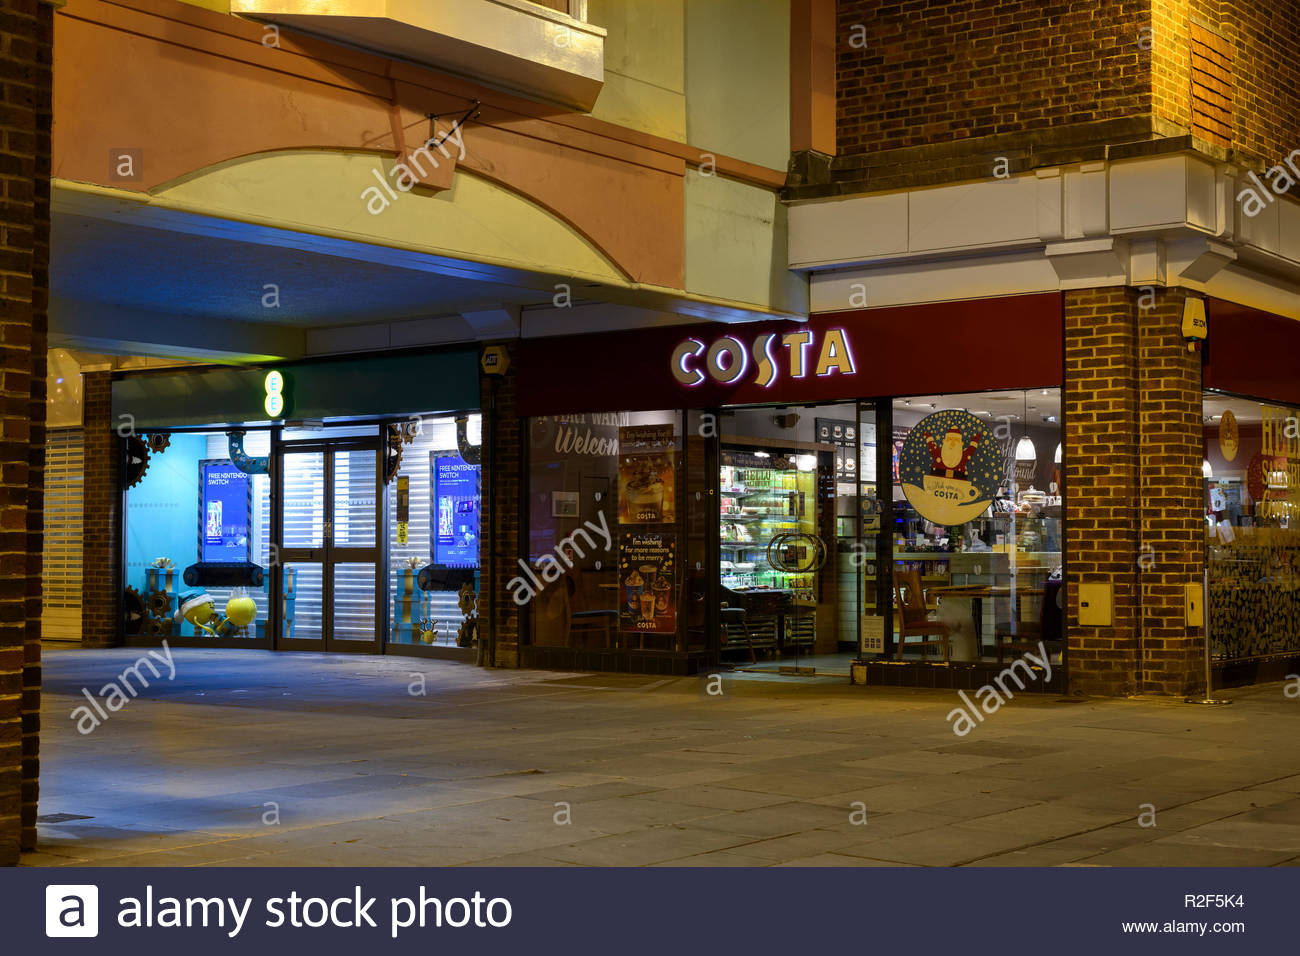 Costa Coffee cafe, Old George Mall, shopping centre, Salisbury, Wiltshire, England, UK - Stock Image